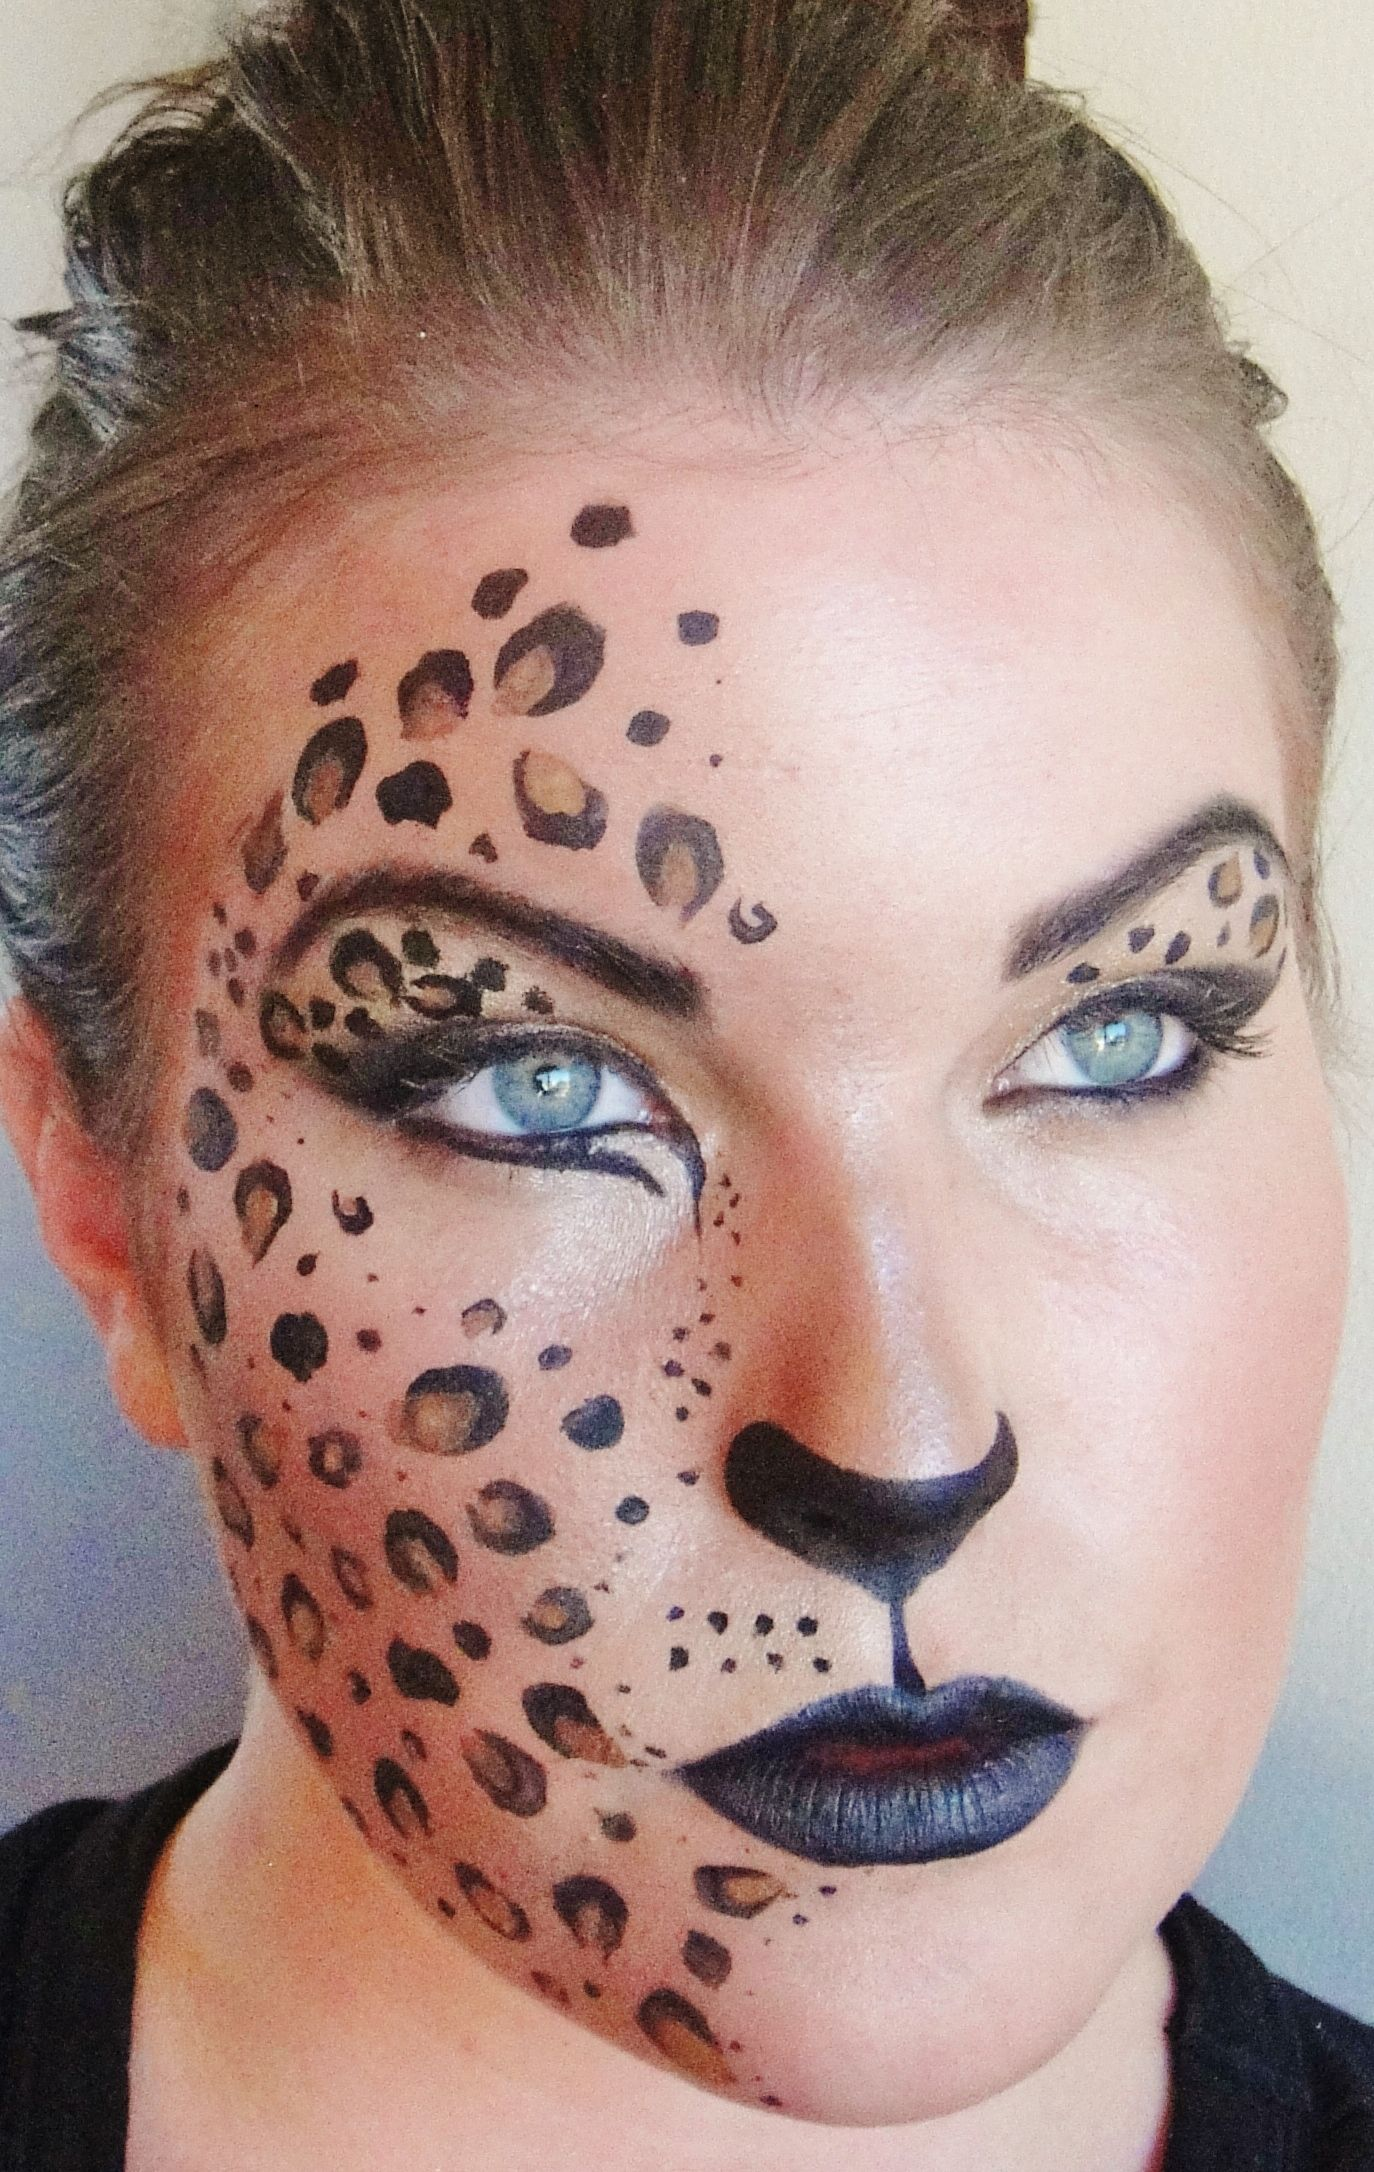 leopard half mask halloween cool creepy mysterious pretty face paint costume girl makeup crazy. Black Bedroom Furniture Sets. Home Design Ideas